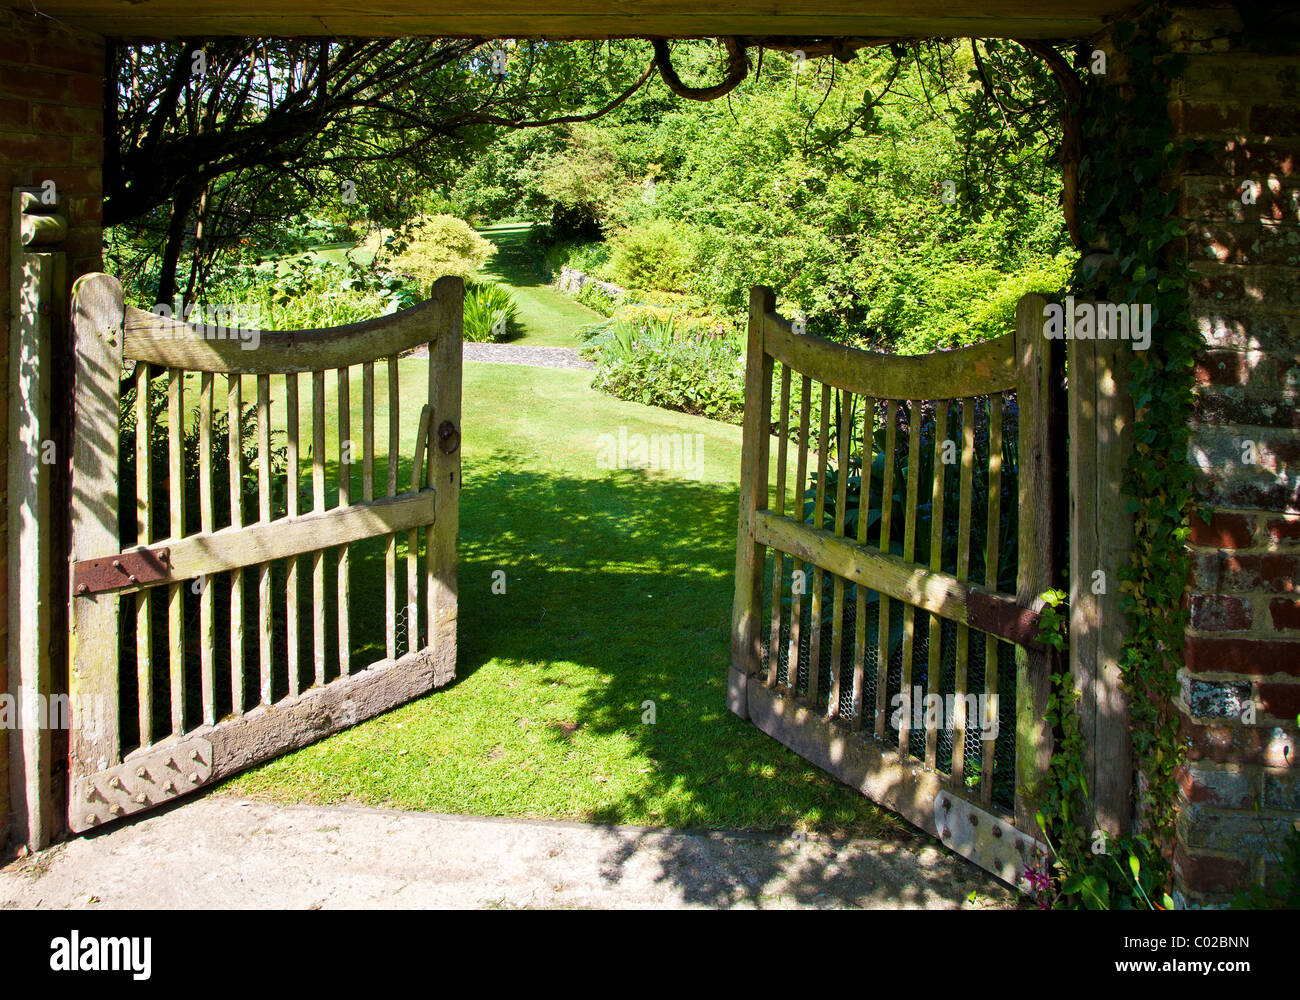 Superb An Open Wooden Garden Gate In An English Country Garden Showing A View To  The Wider Garden Beyond.